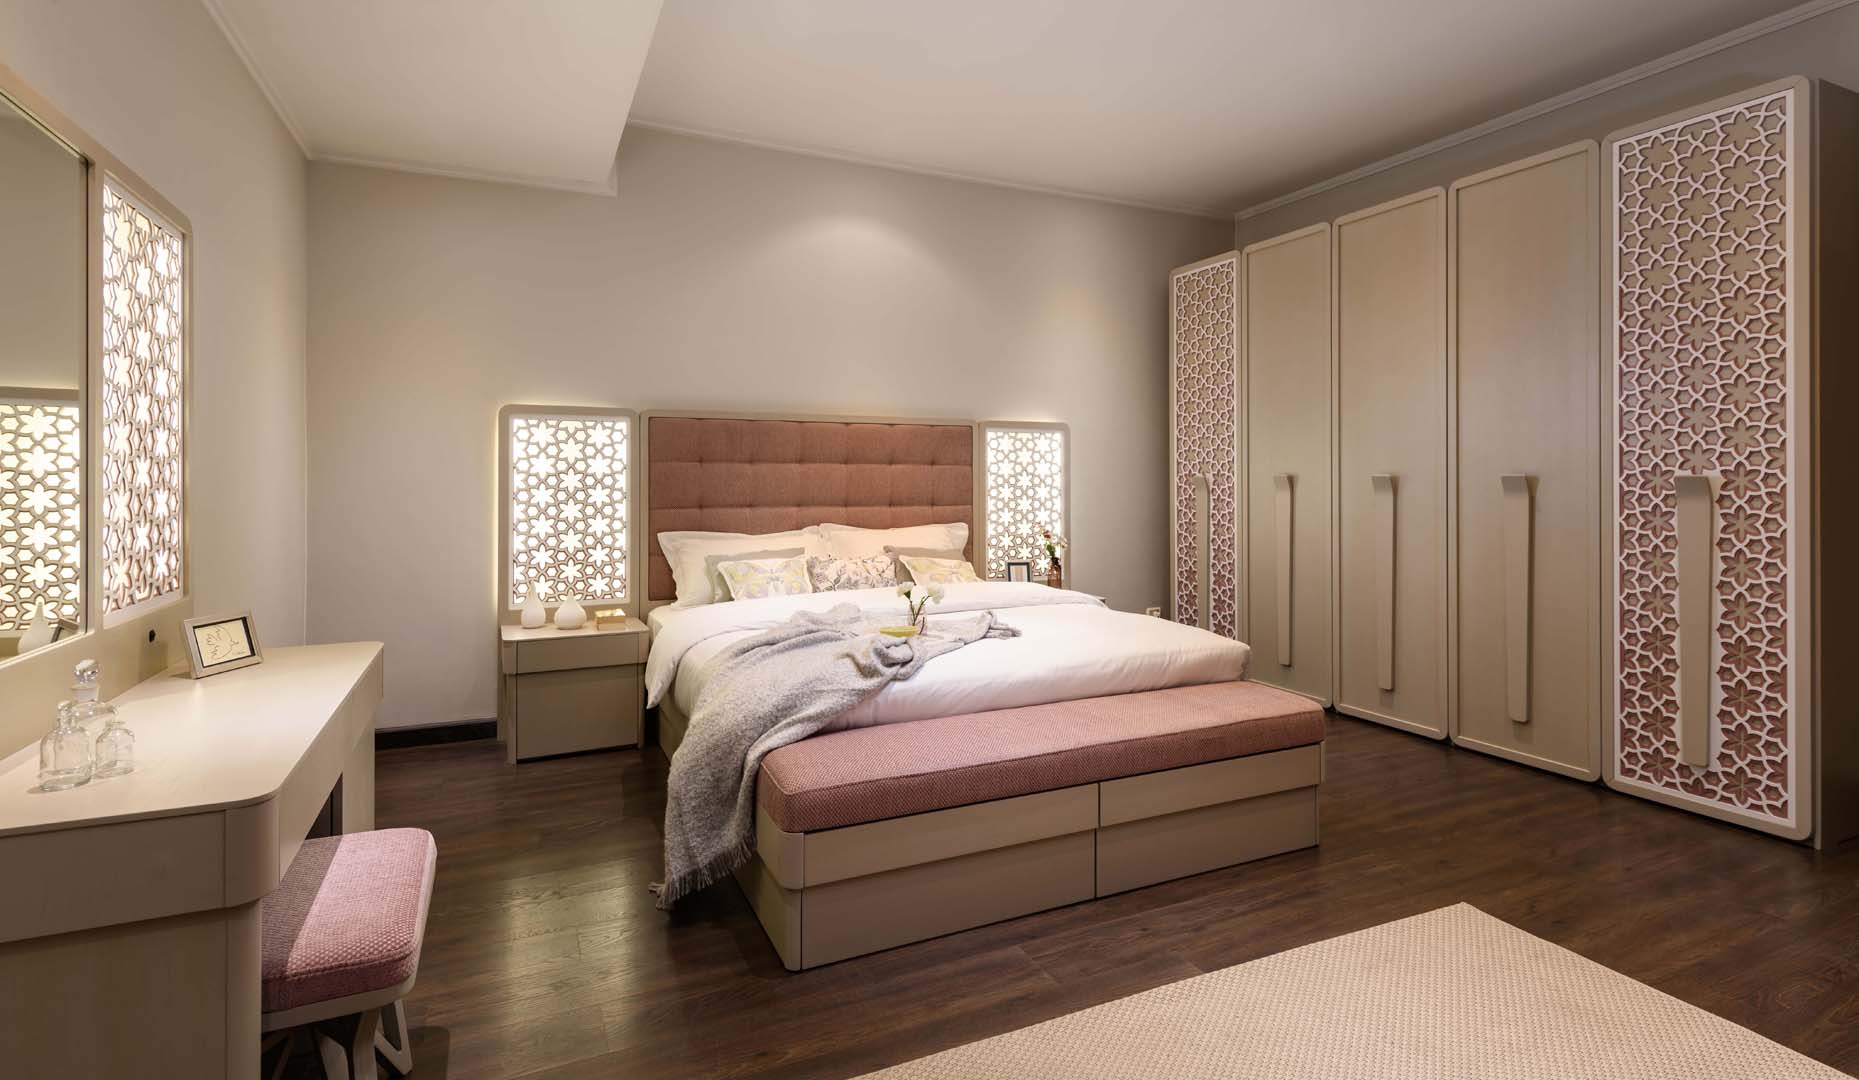 Andalusia master bed 160*240